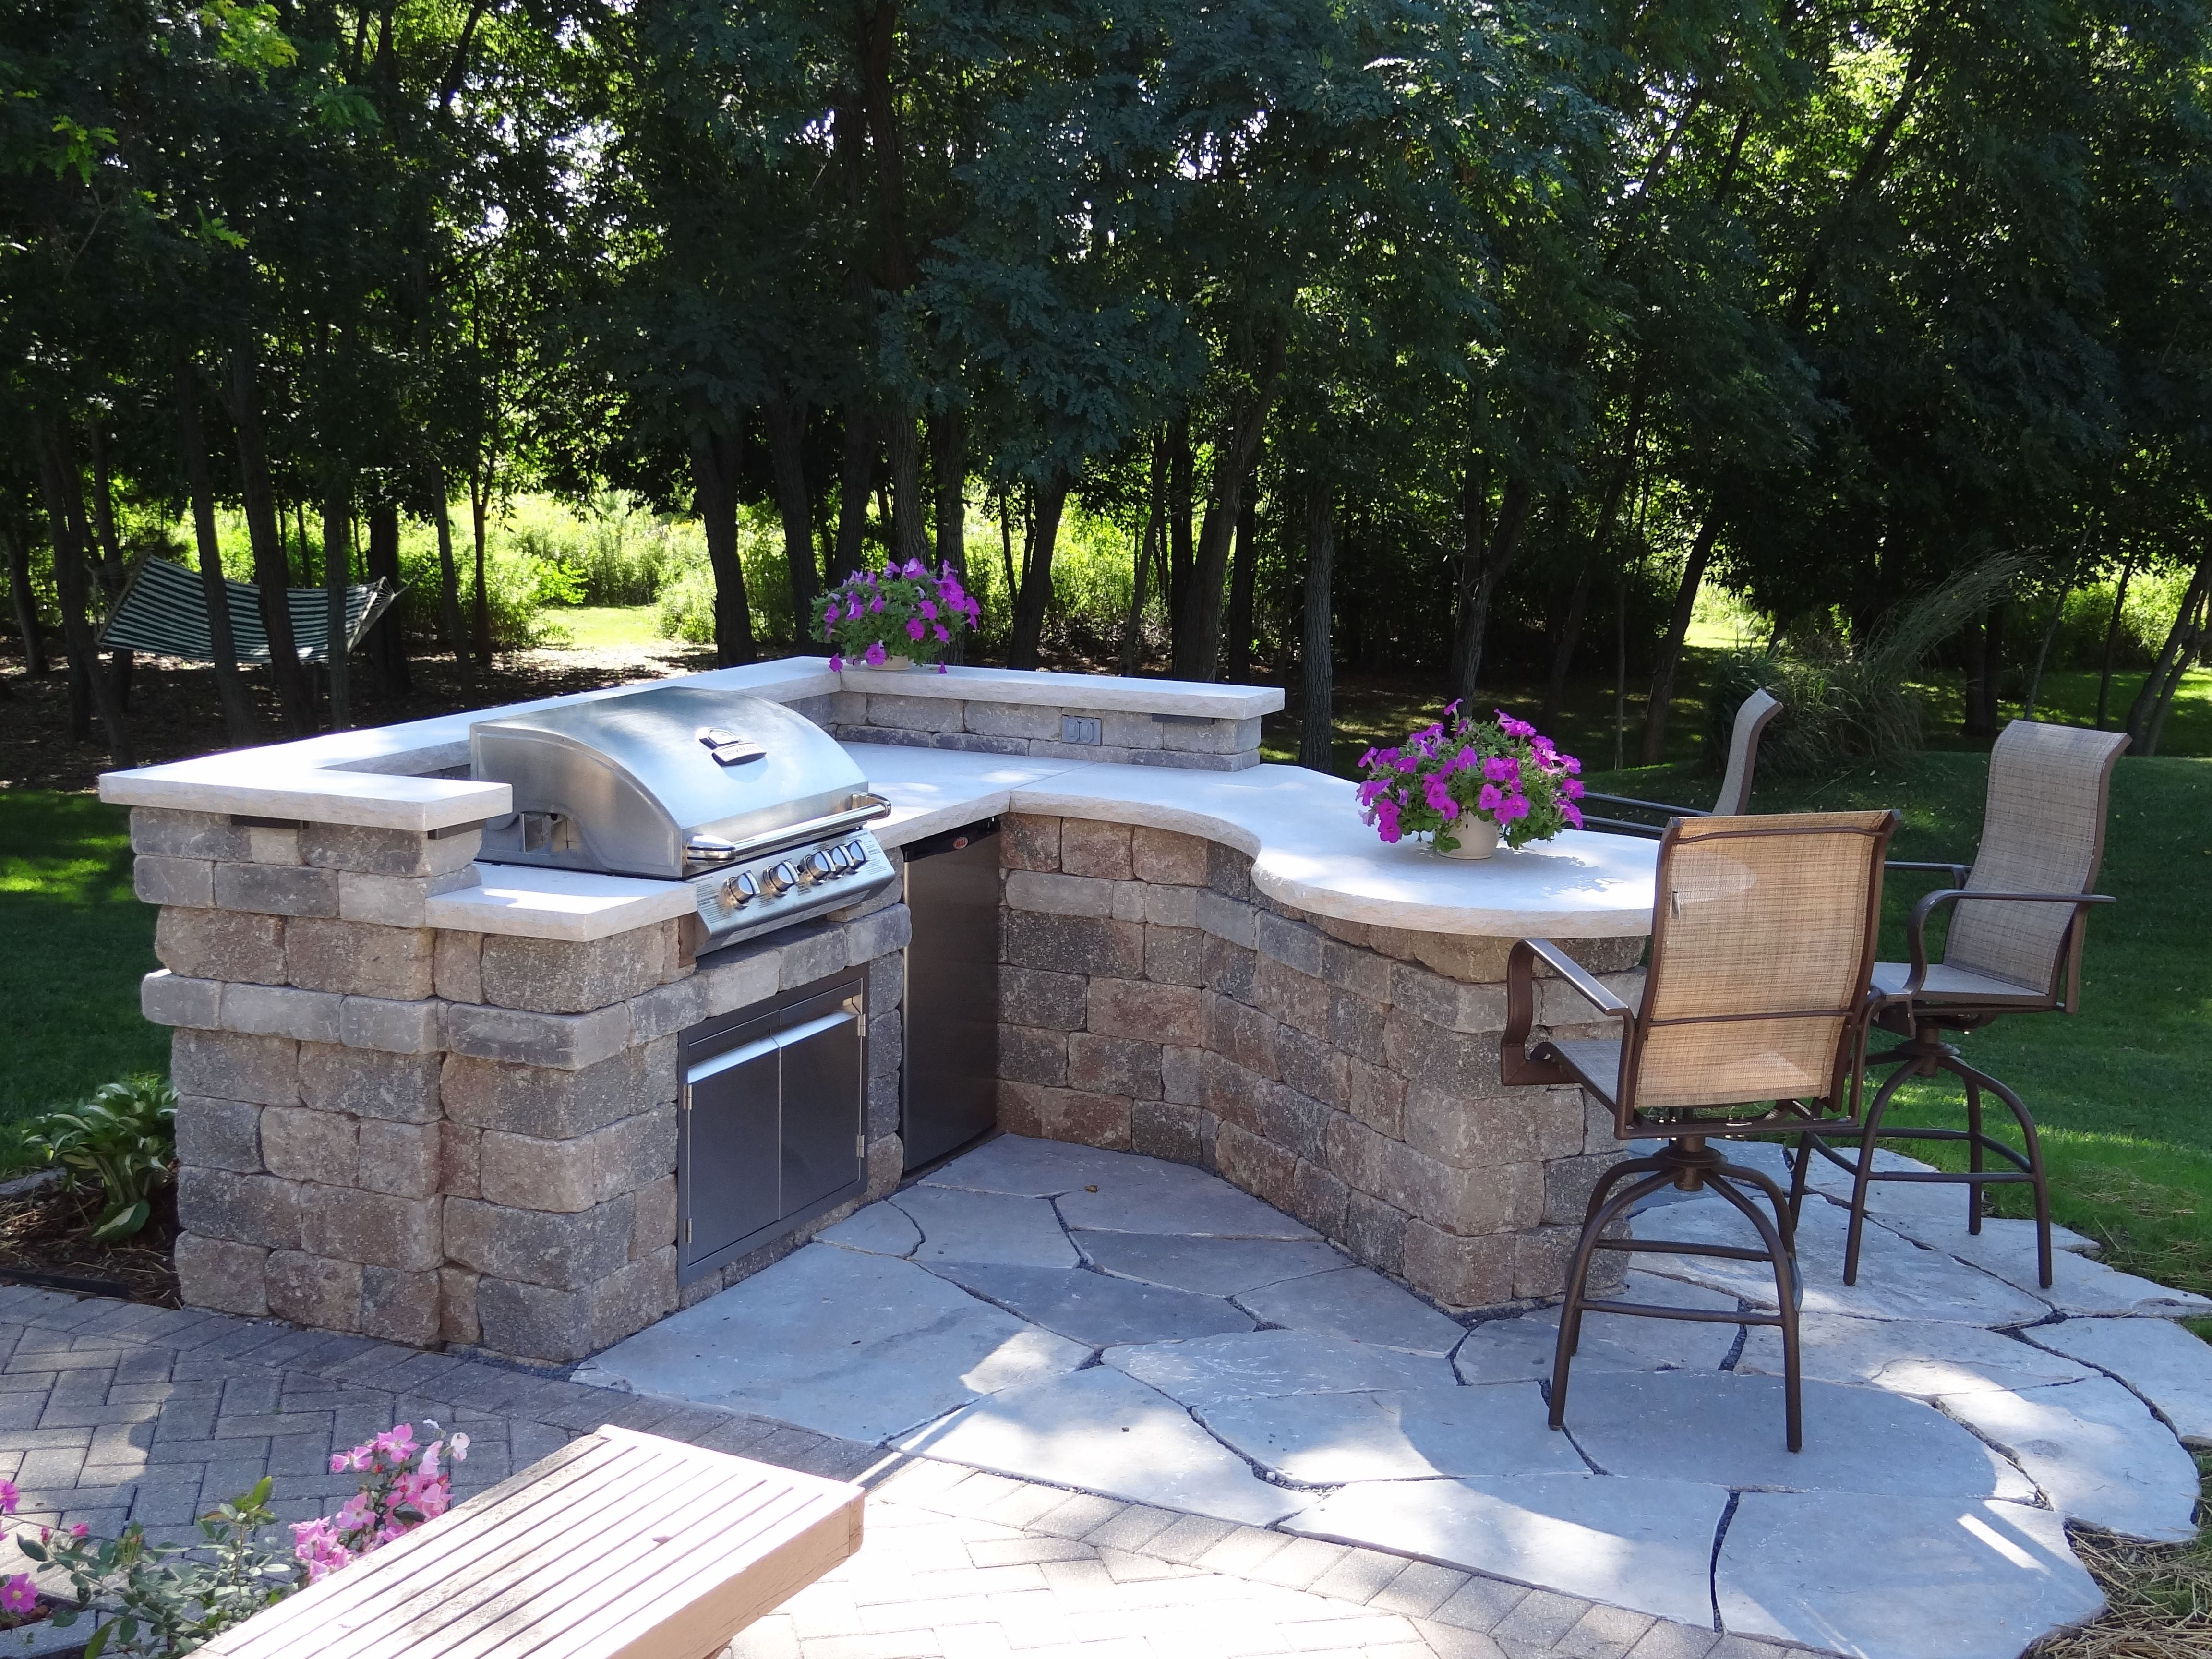 Outdoor Kitchen Backyard Patio Ideas Featuring A Gas Grill Outdoor Refrigerator Led Lighting Flagstone Patio Electr Outdoor Grill Area Patio Outdoor Bbq